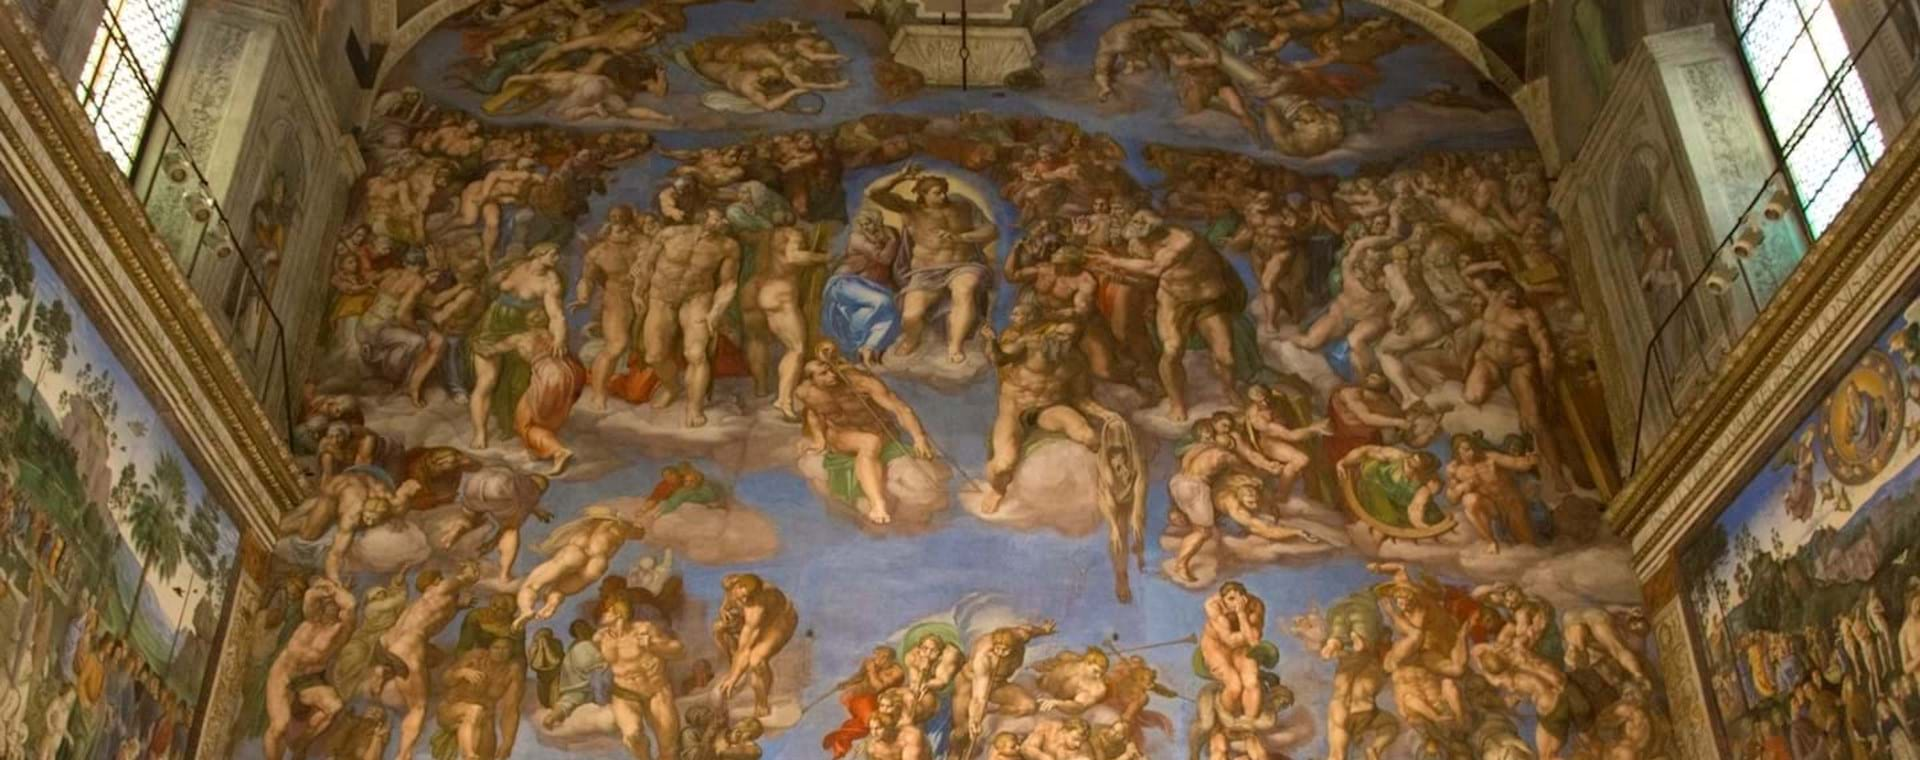 Full-Day Combo: Complete Colosseum & Vatican Museums Tour